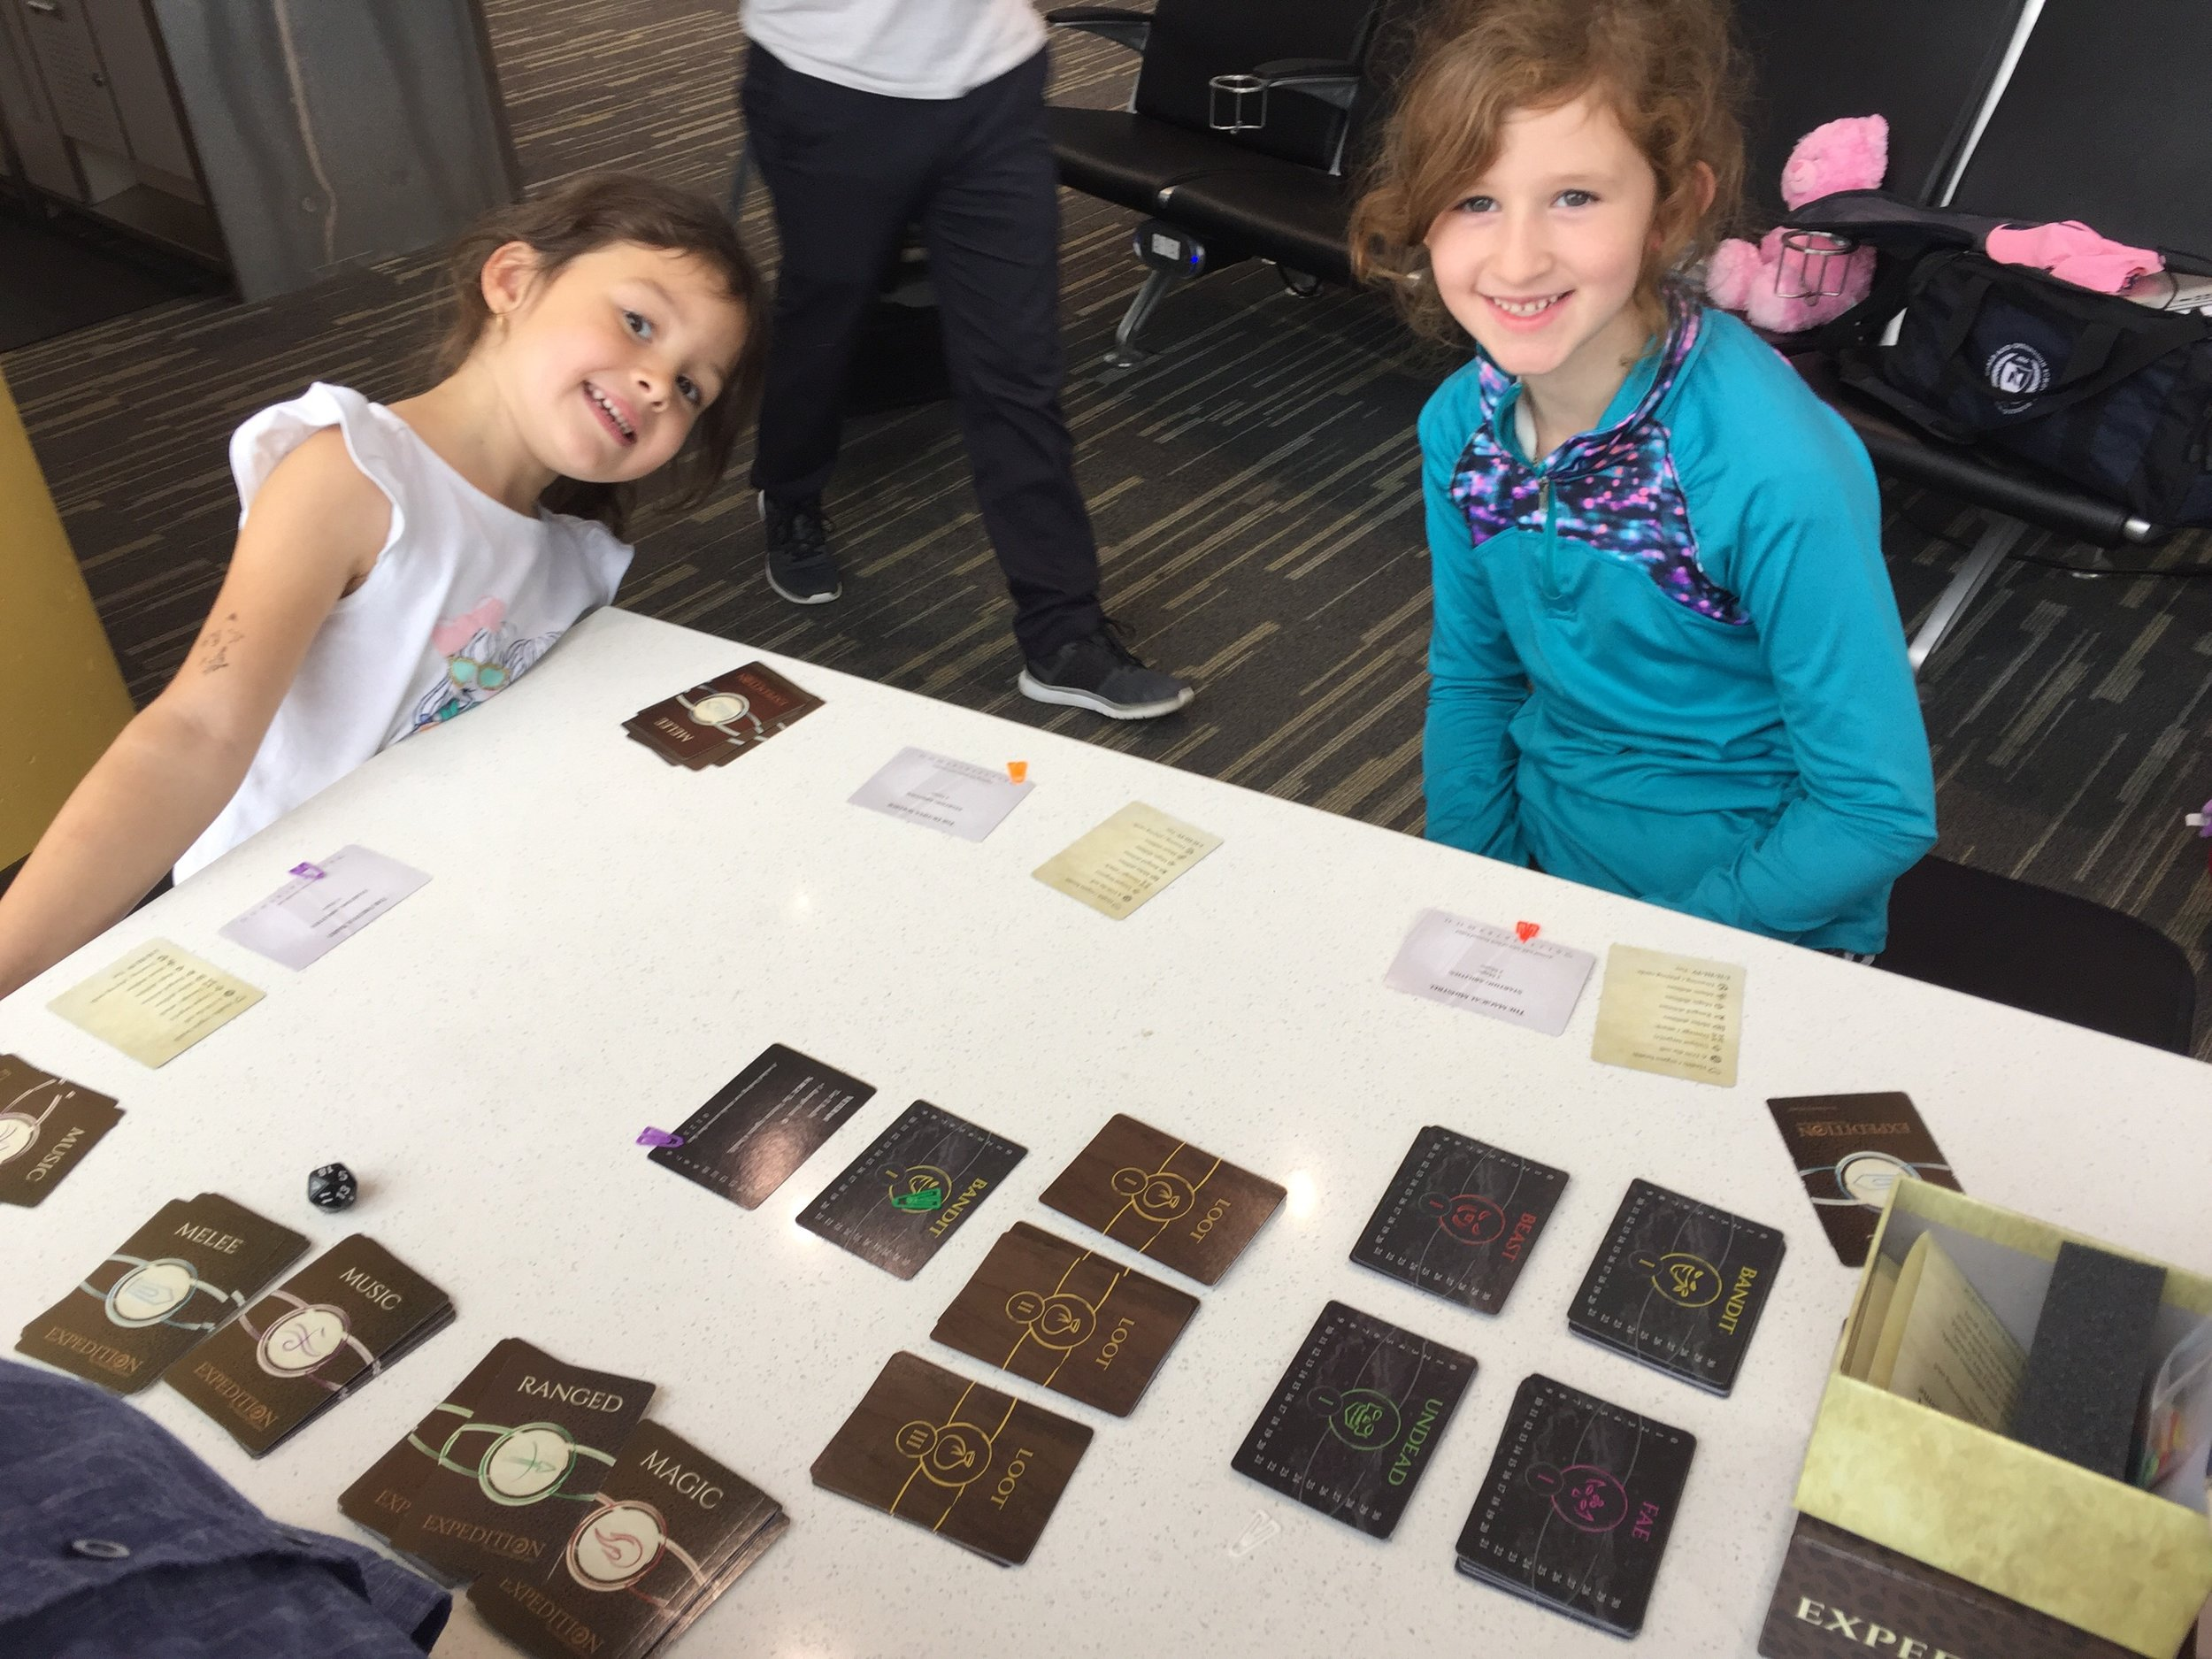 expedition-family-rpg-roleplaying-board-game.jpg